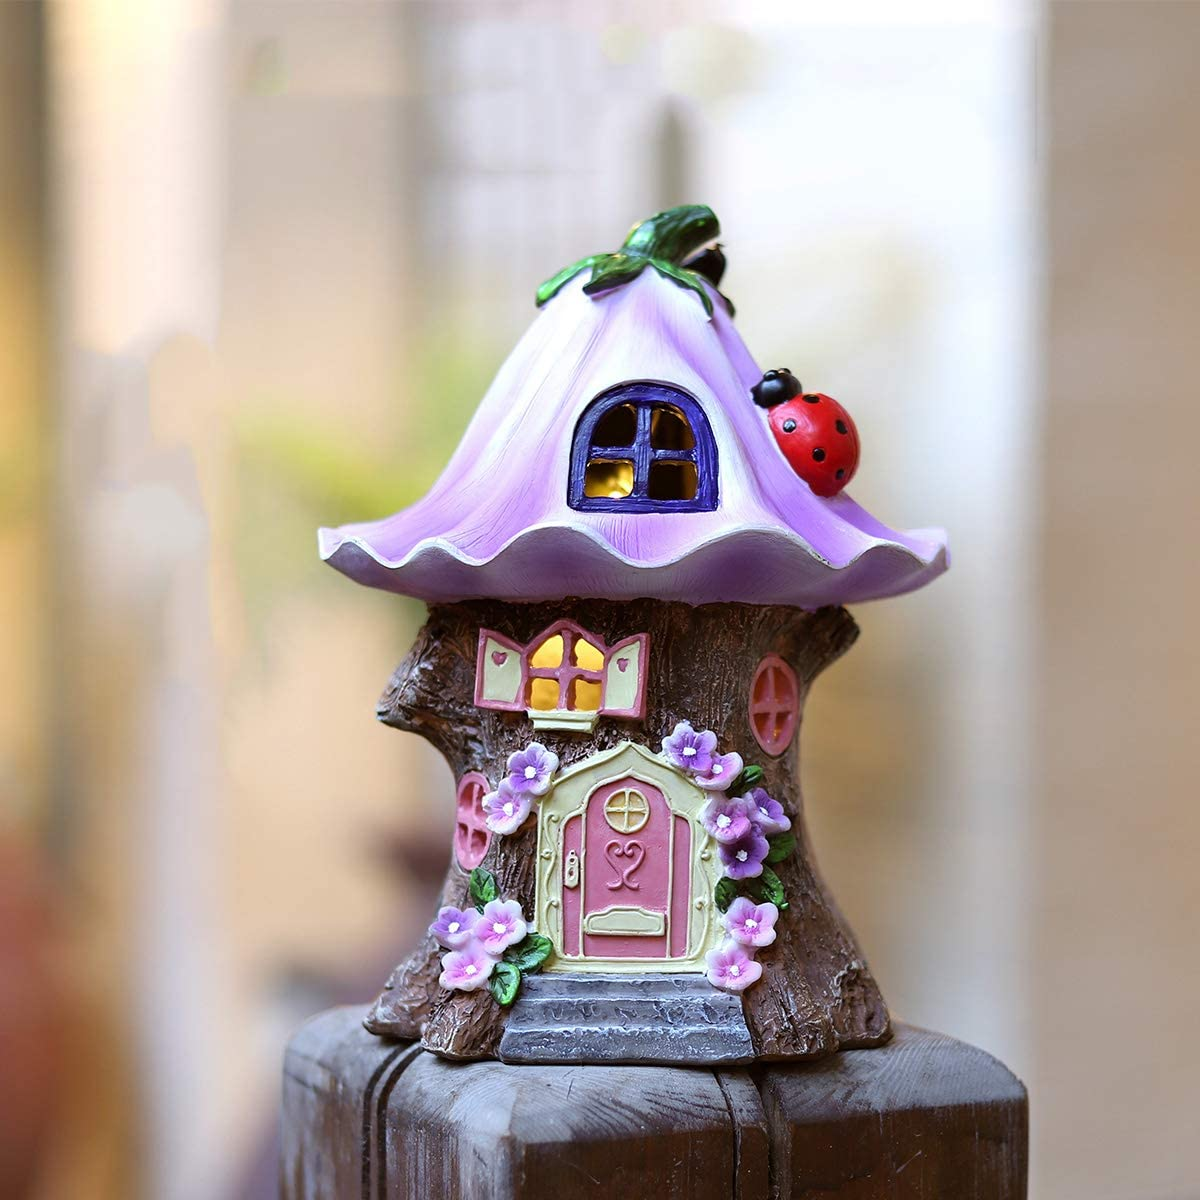 Trasfit Fairy Garden Statue House Figurine, Lovely Purple Flowers Tree House with Solar LED Lights for Indoor Outdoor Patio Yard Lawn Ornaments Gift (Purple Flowers Tree House)